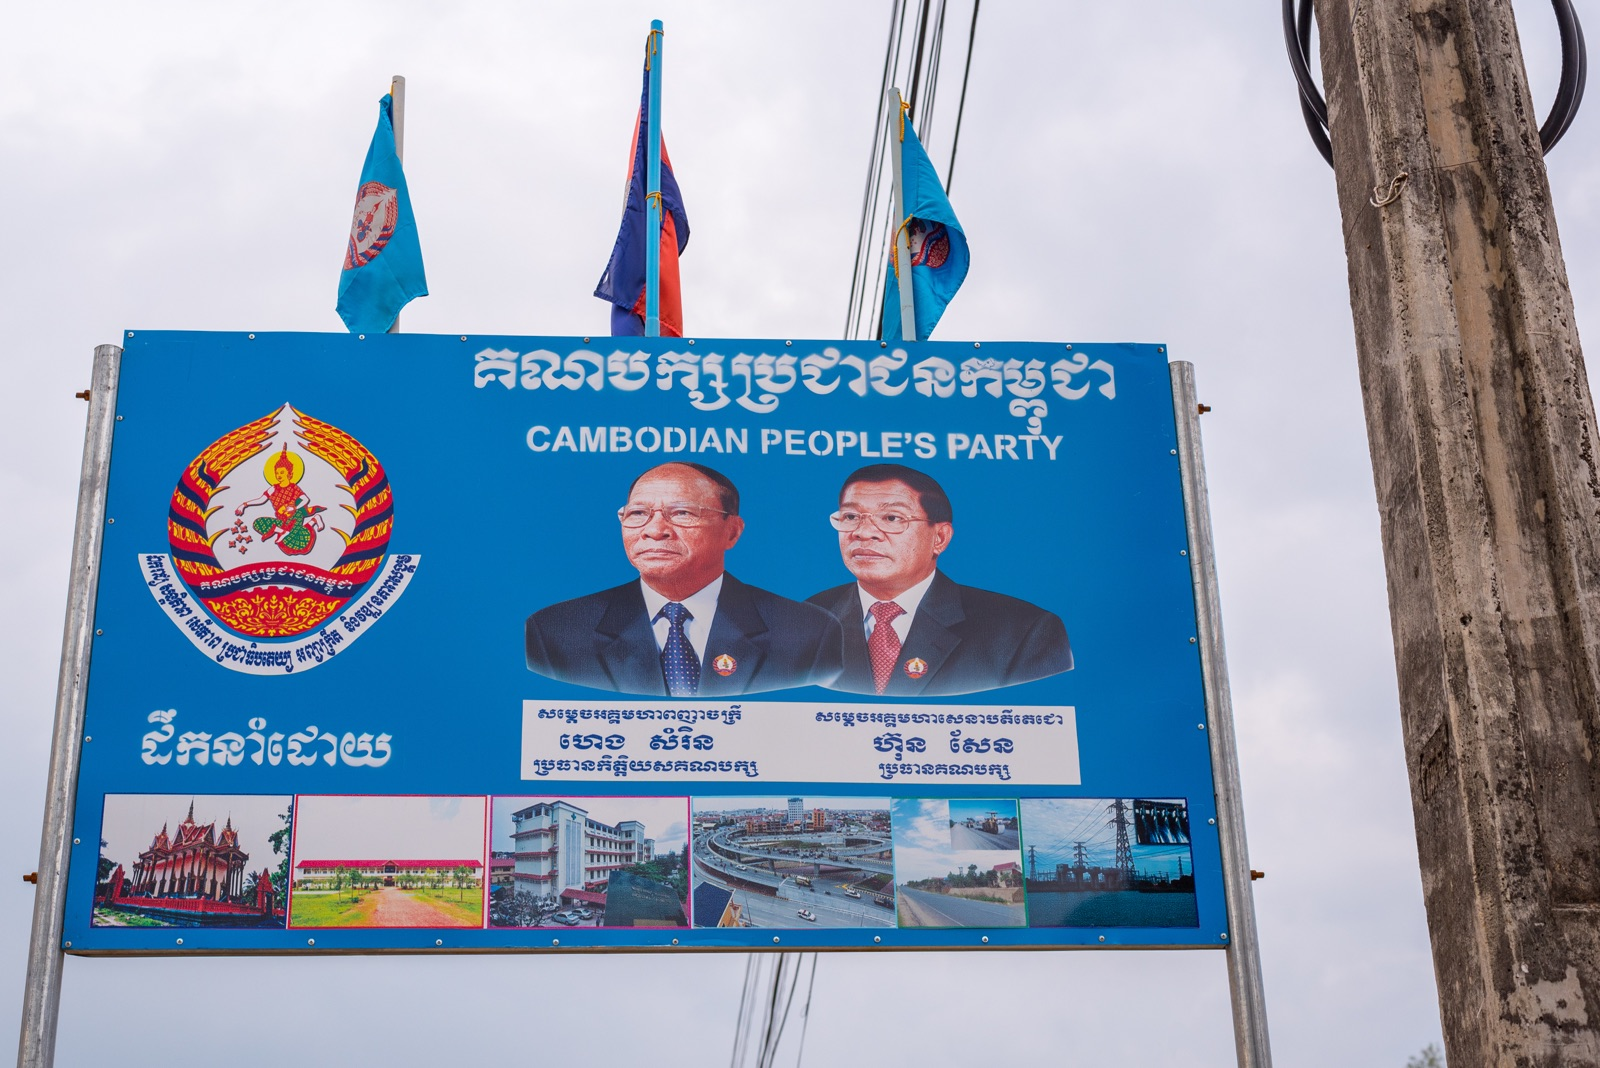 Cambodian People's Party - New Naratif